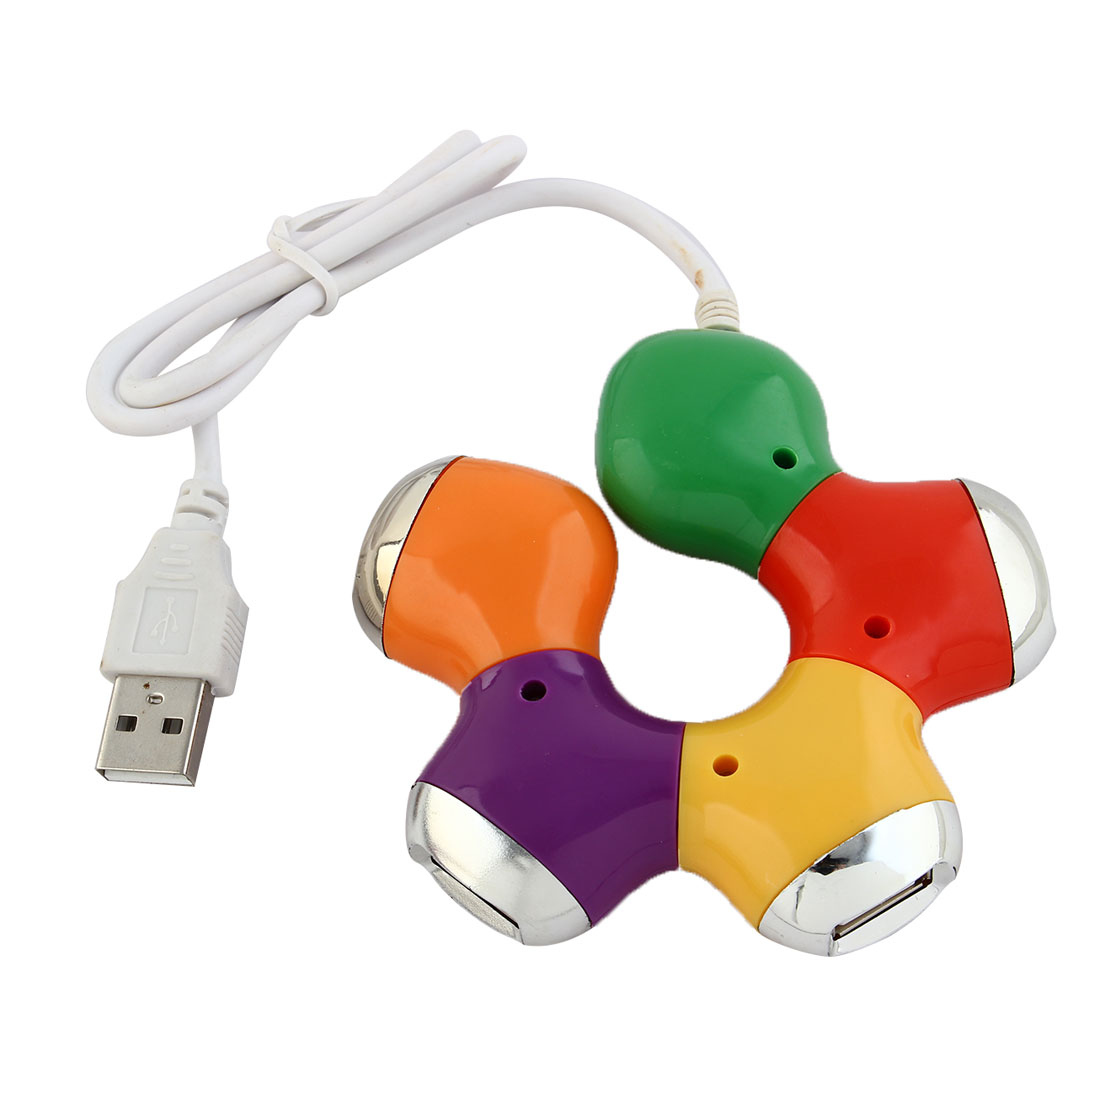 Colored USB 2.0 Hi-Speed 4-Port Splitter Hub Adapter for PC Computer Notebook